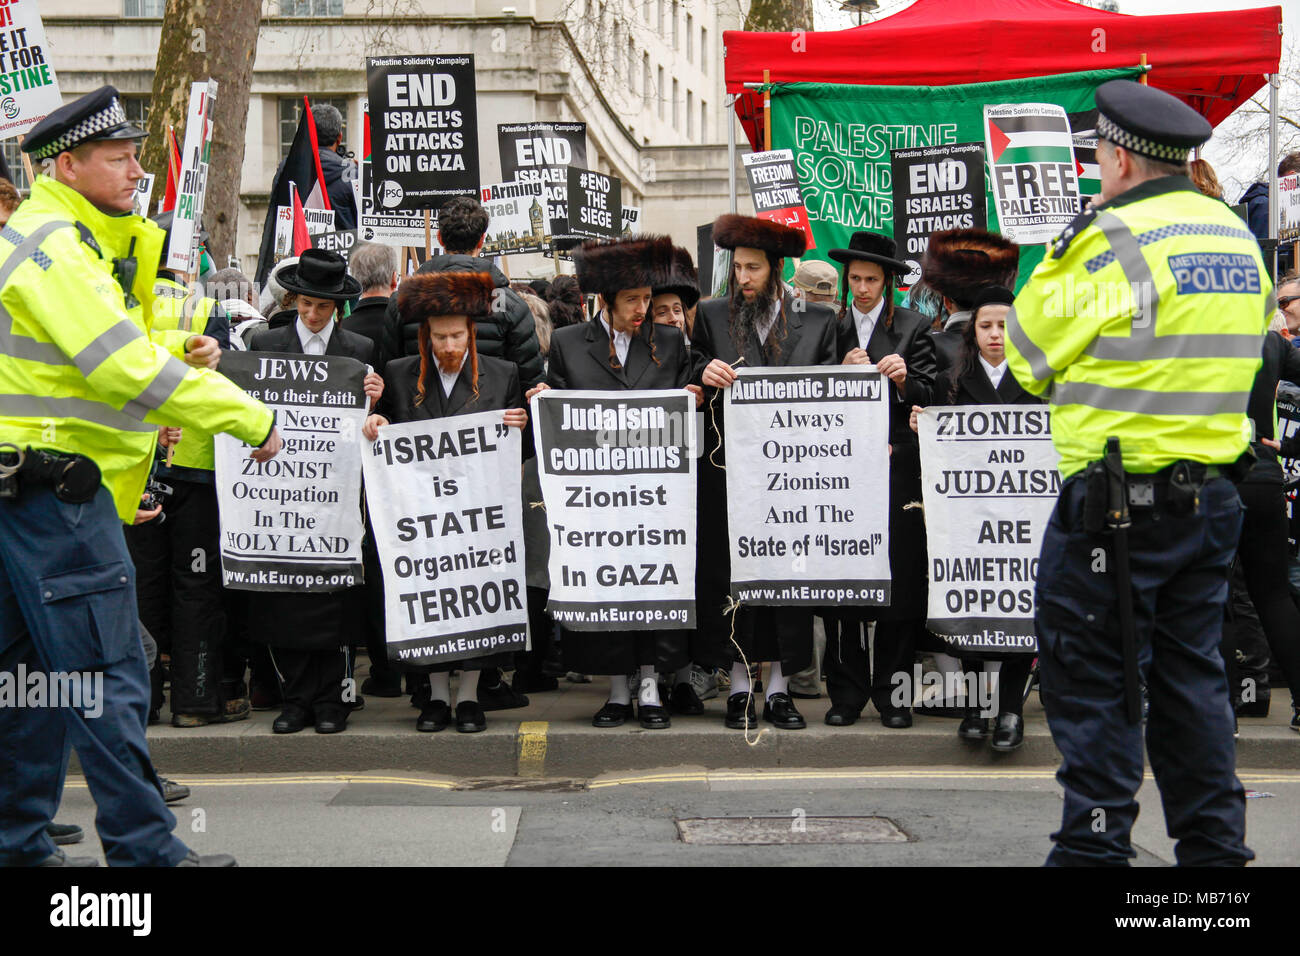 Hasidic Jews protest Israel and Zionism at the Protest for Gaza - Stock Image